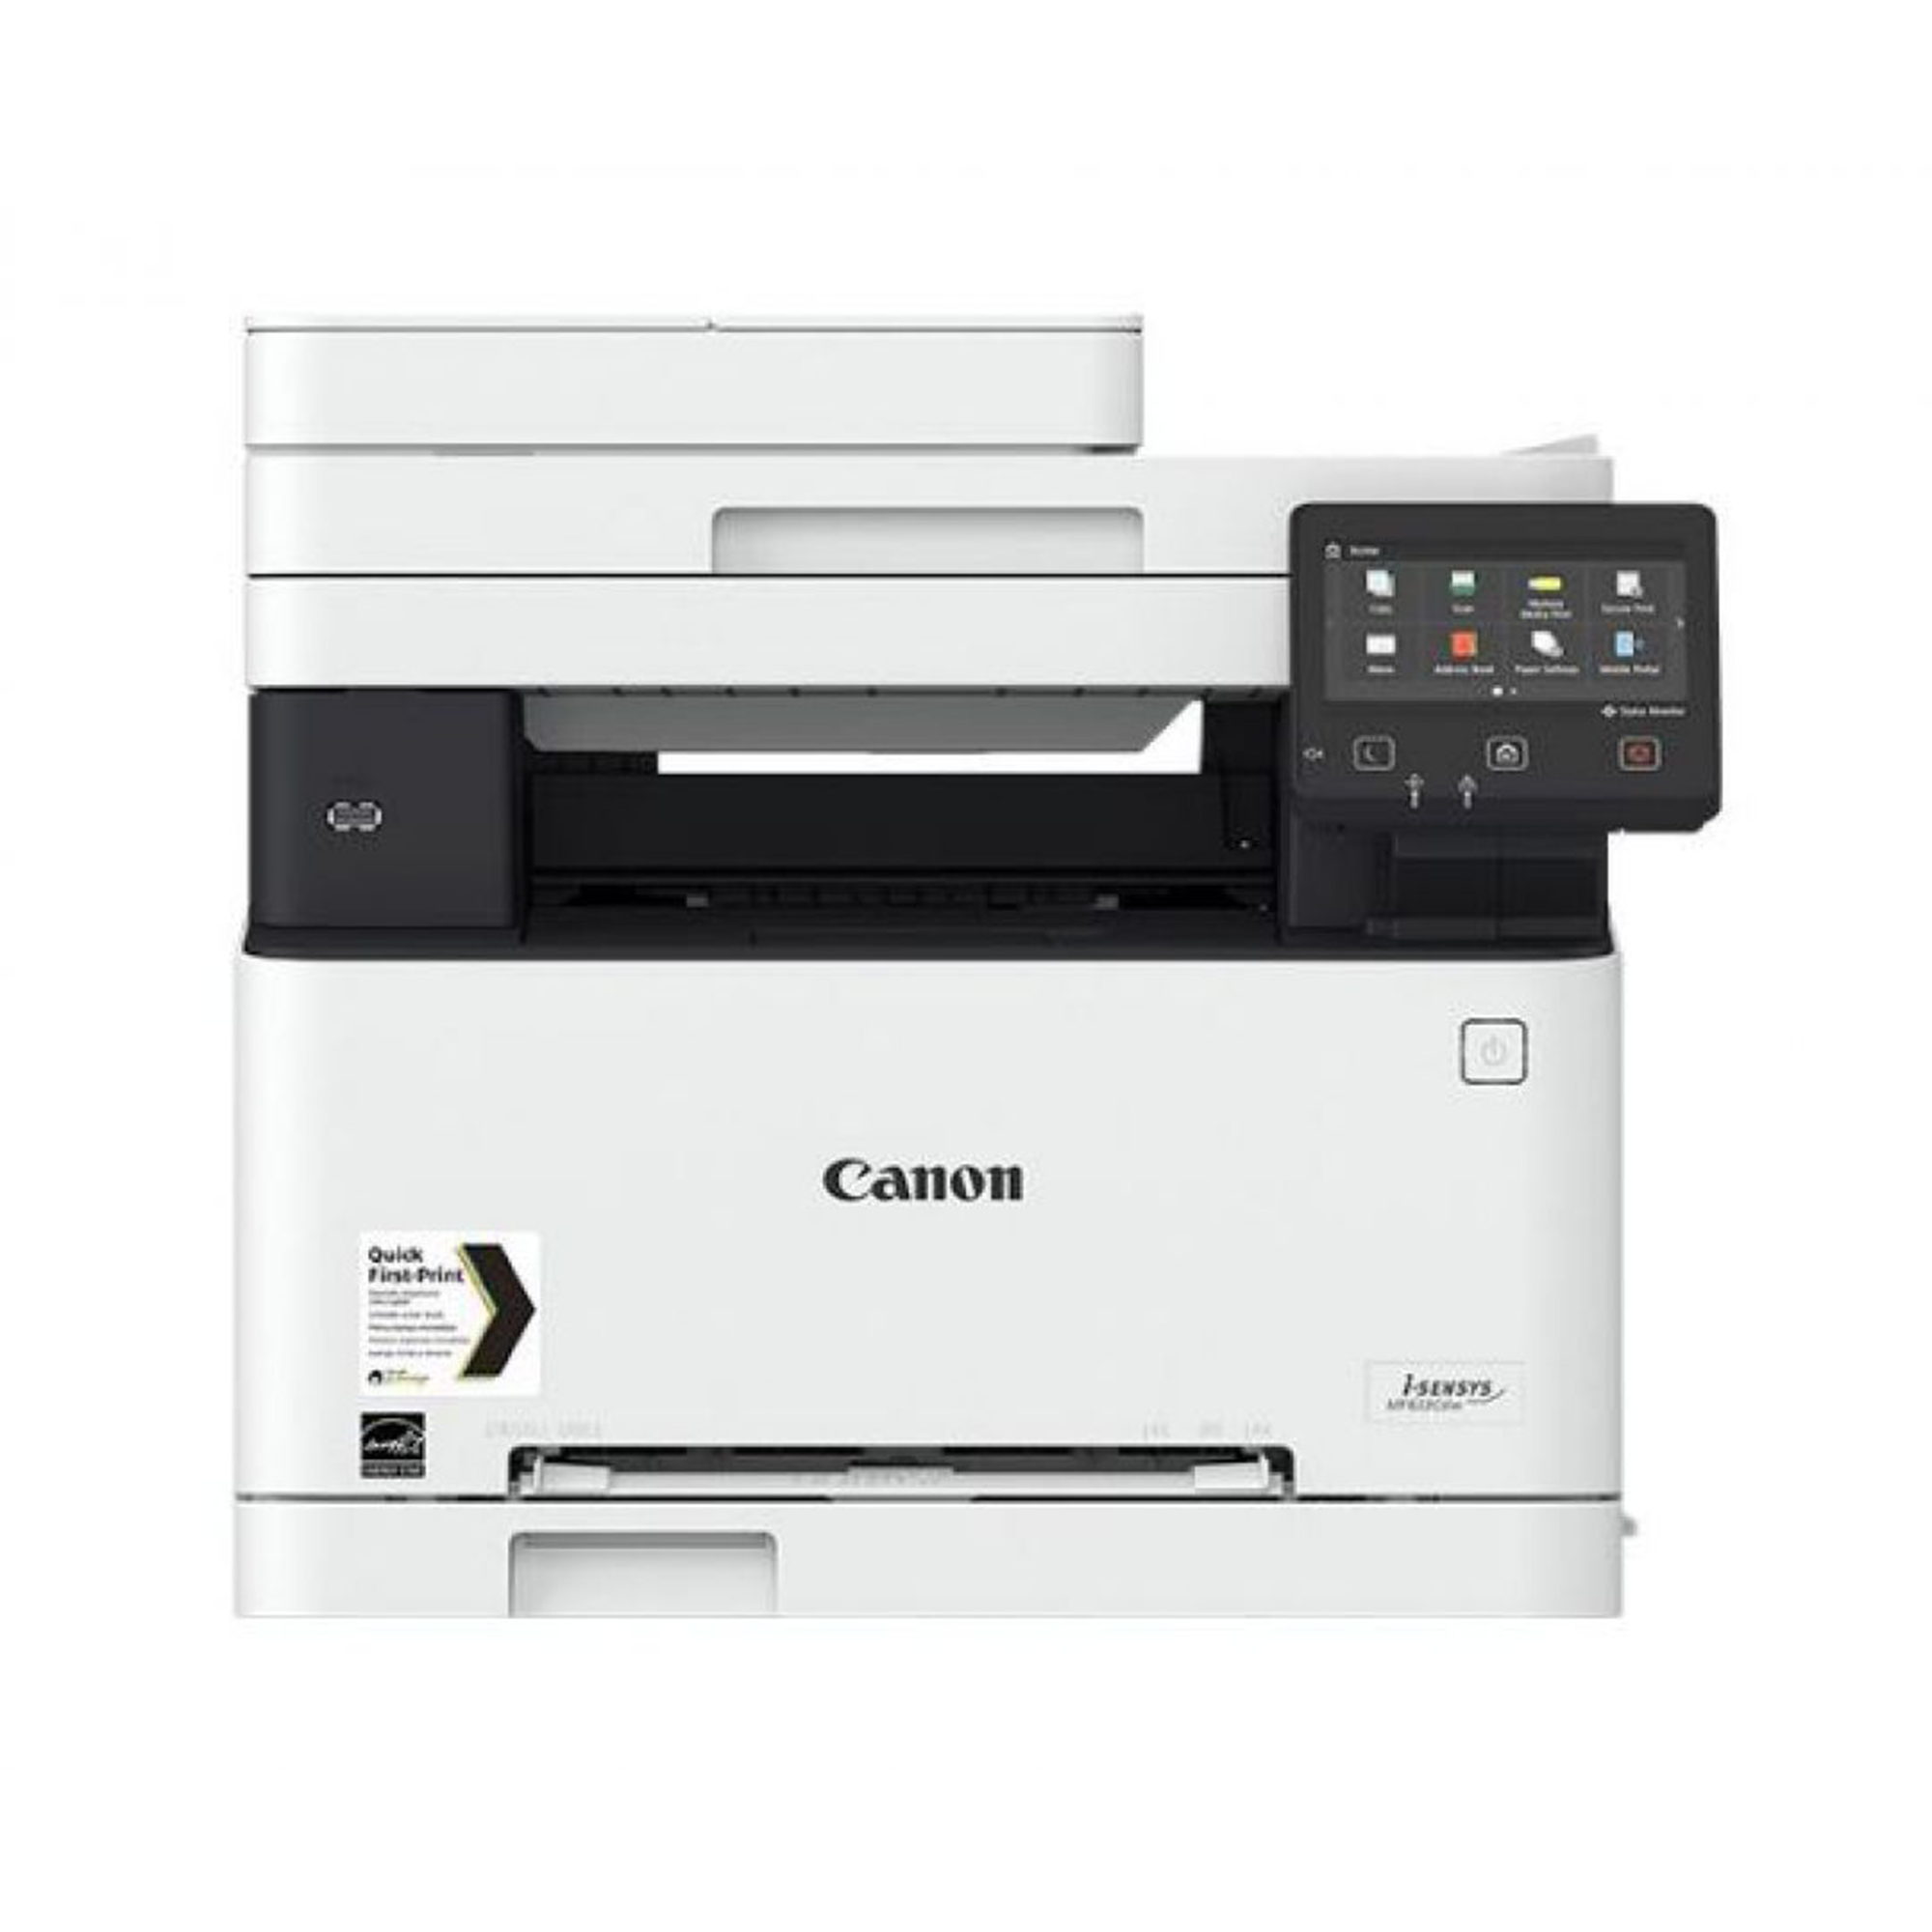 Canon i-SENSYS MF 633 Cdw Printer + A4 COPY PAPER FREE GIFT